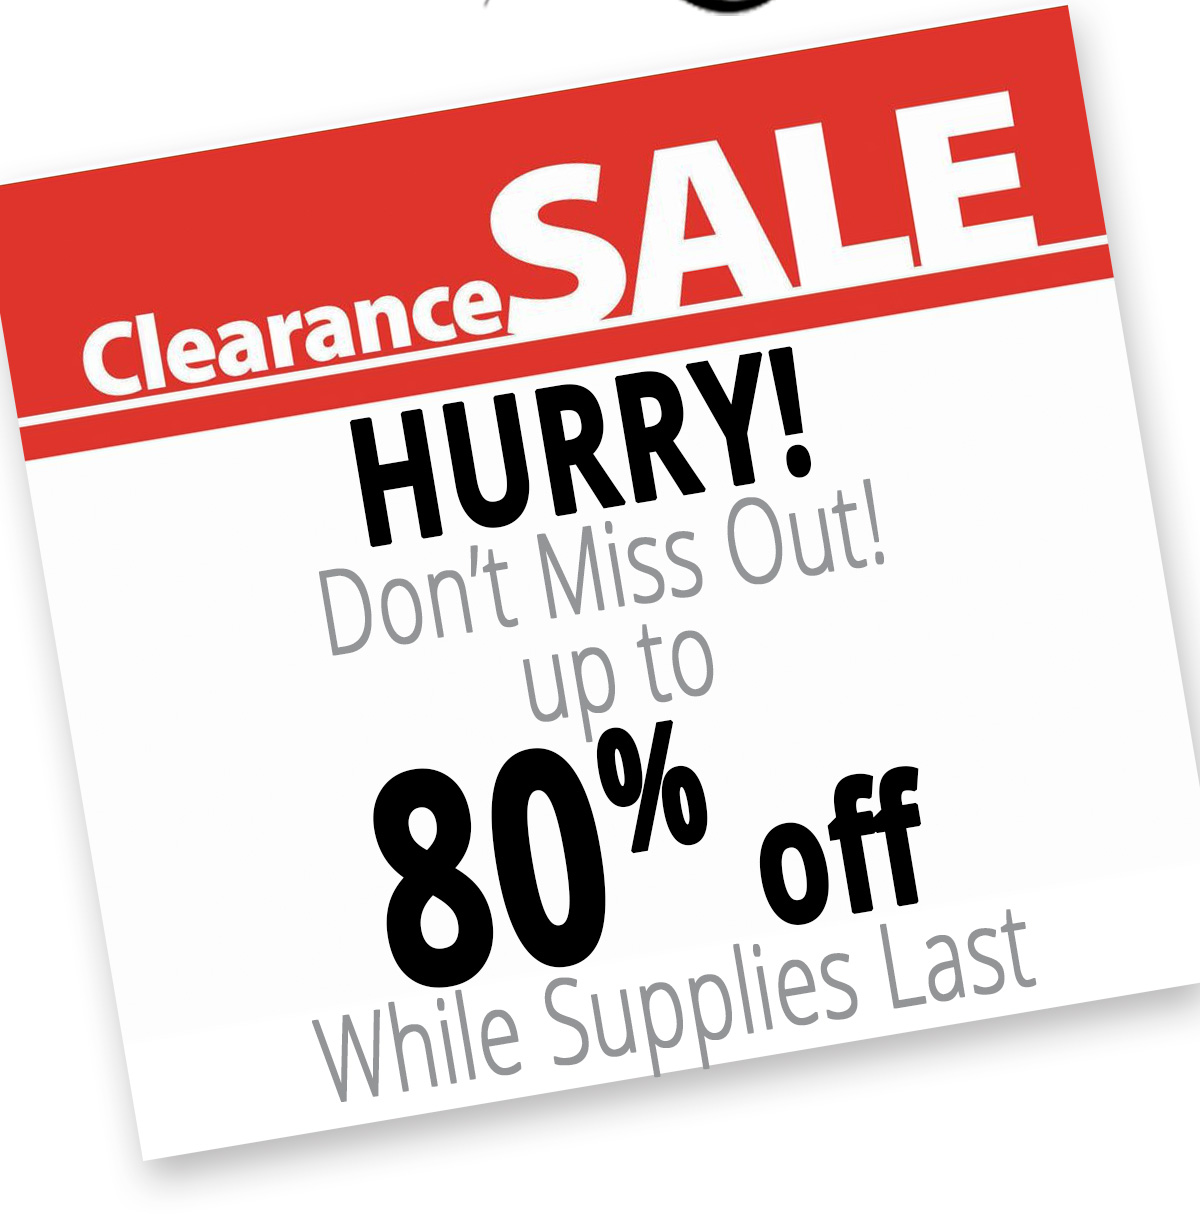 Get up to 80% off clearance items - only while supplies last!